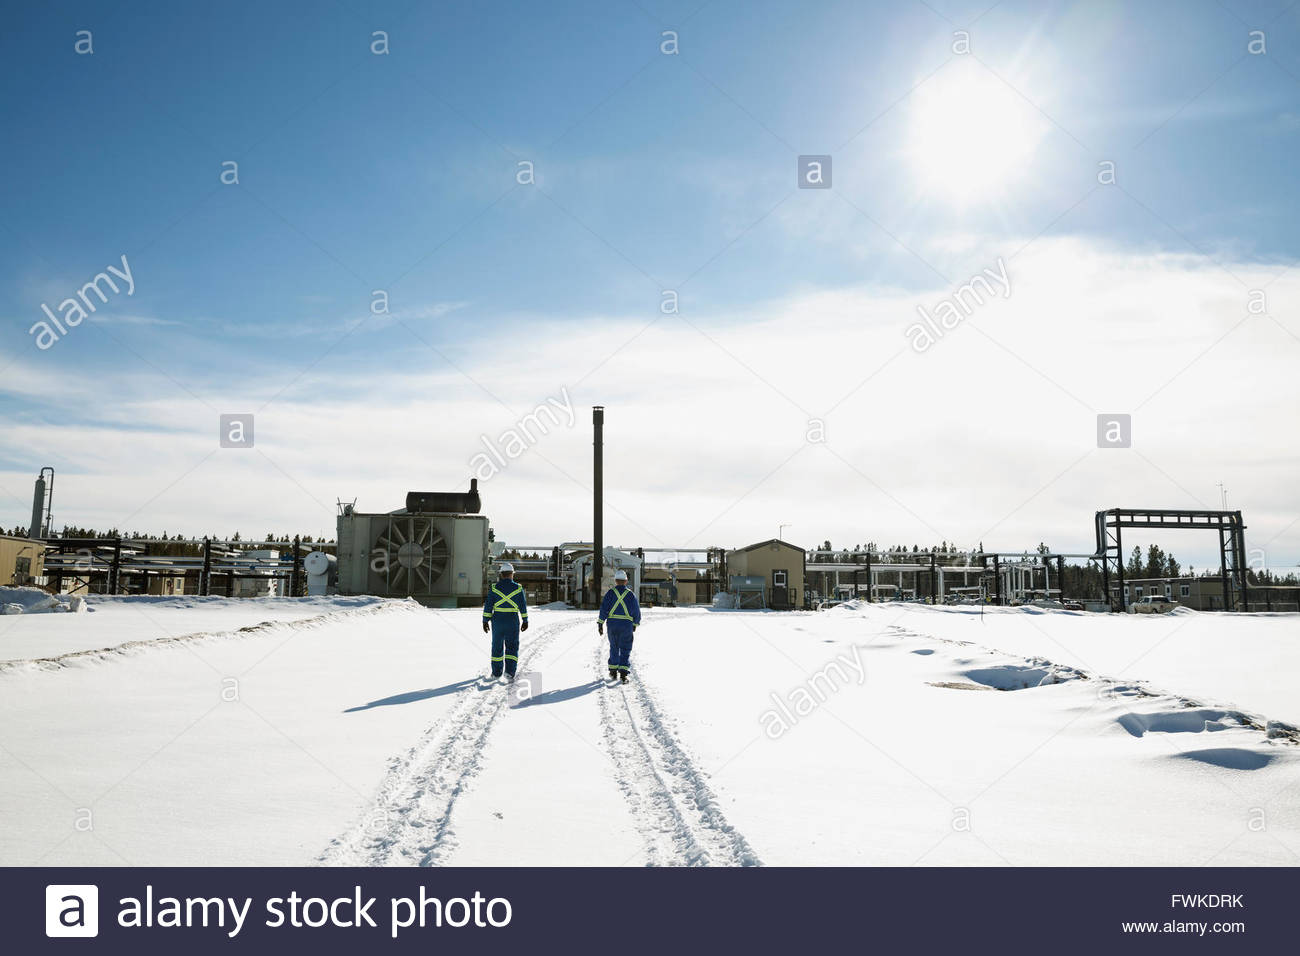 Workers walking in snow toward gas plant - Stock Image